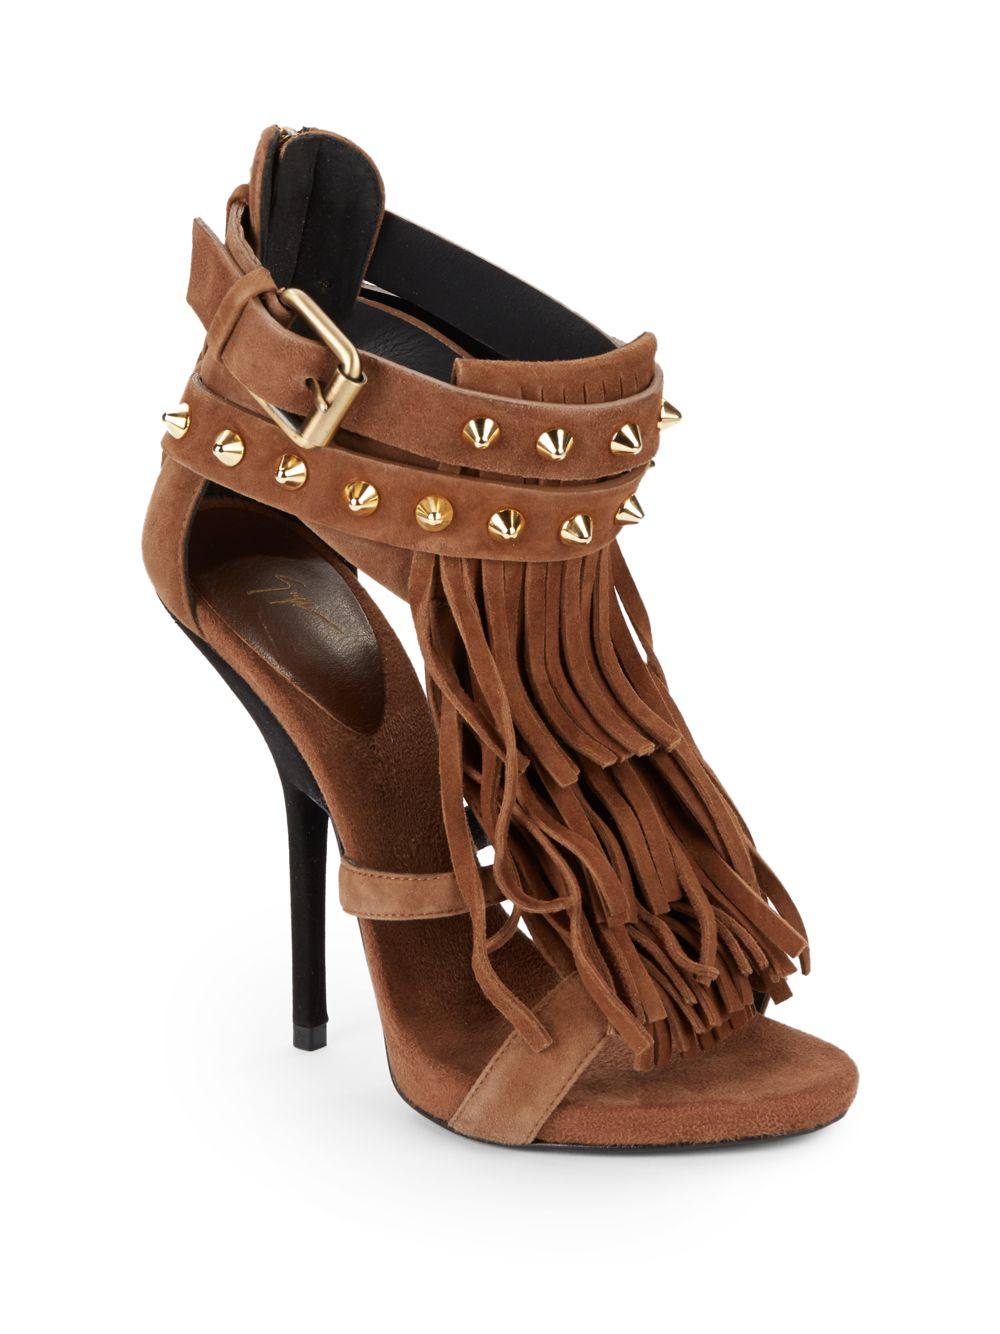 Lyst Giuseppe Zanotti Studded Suede Fringe Sandals In Brown